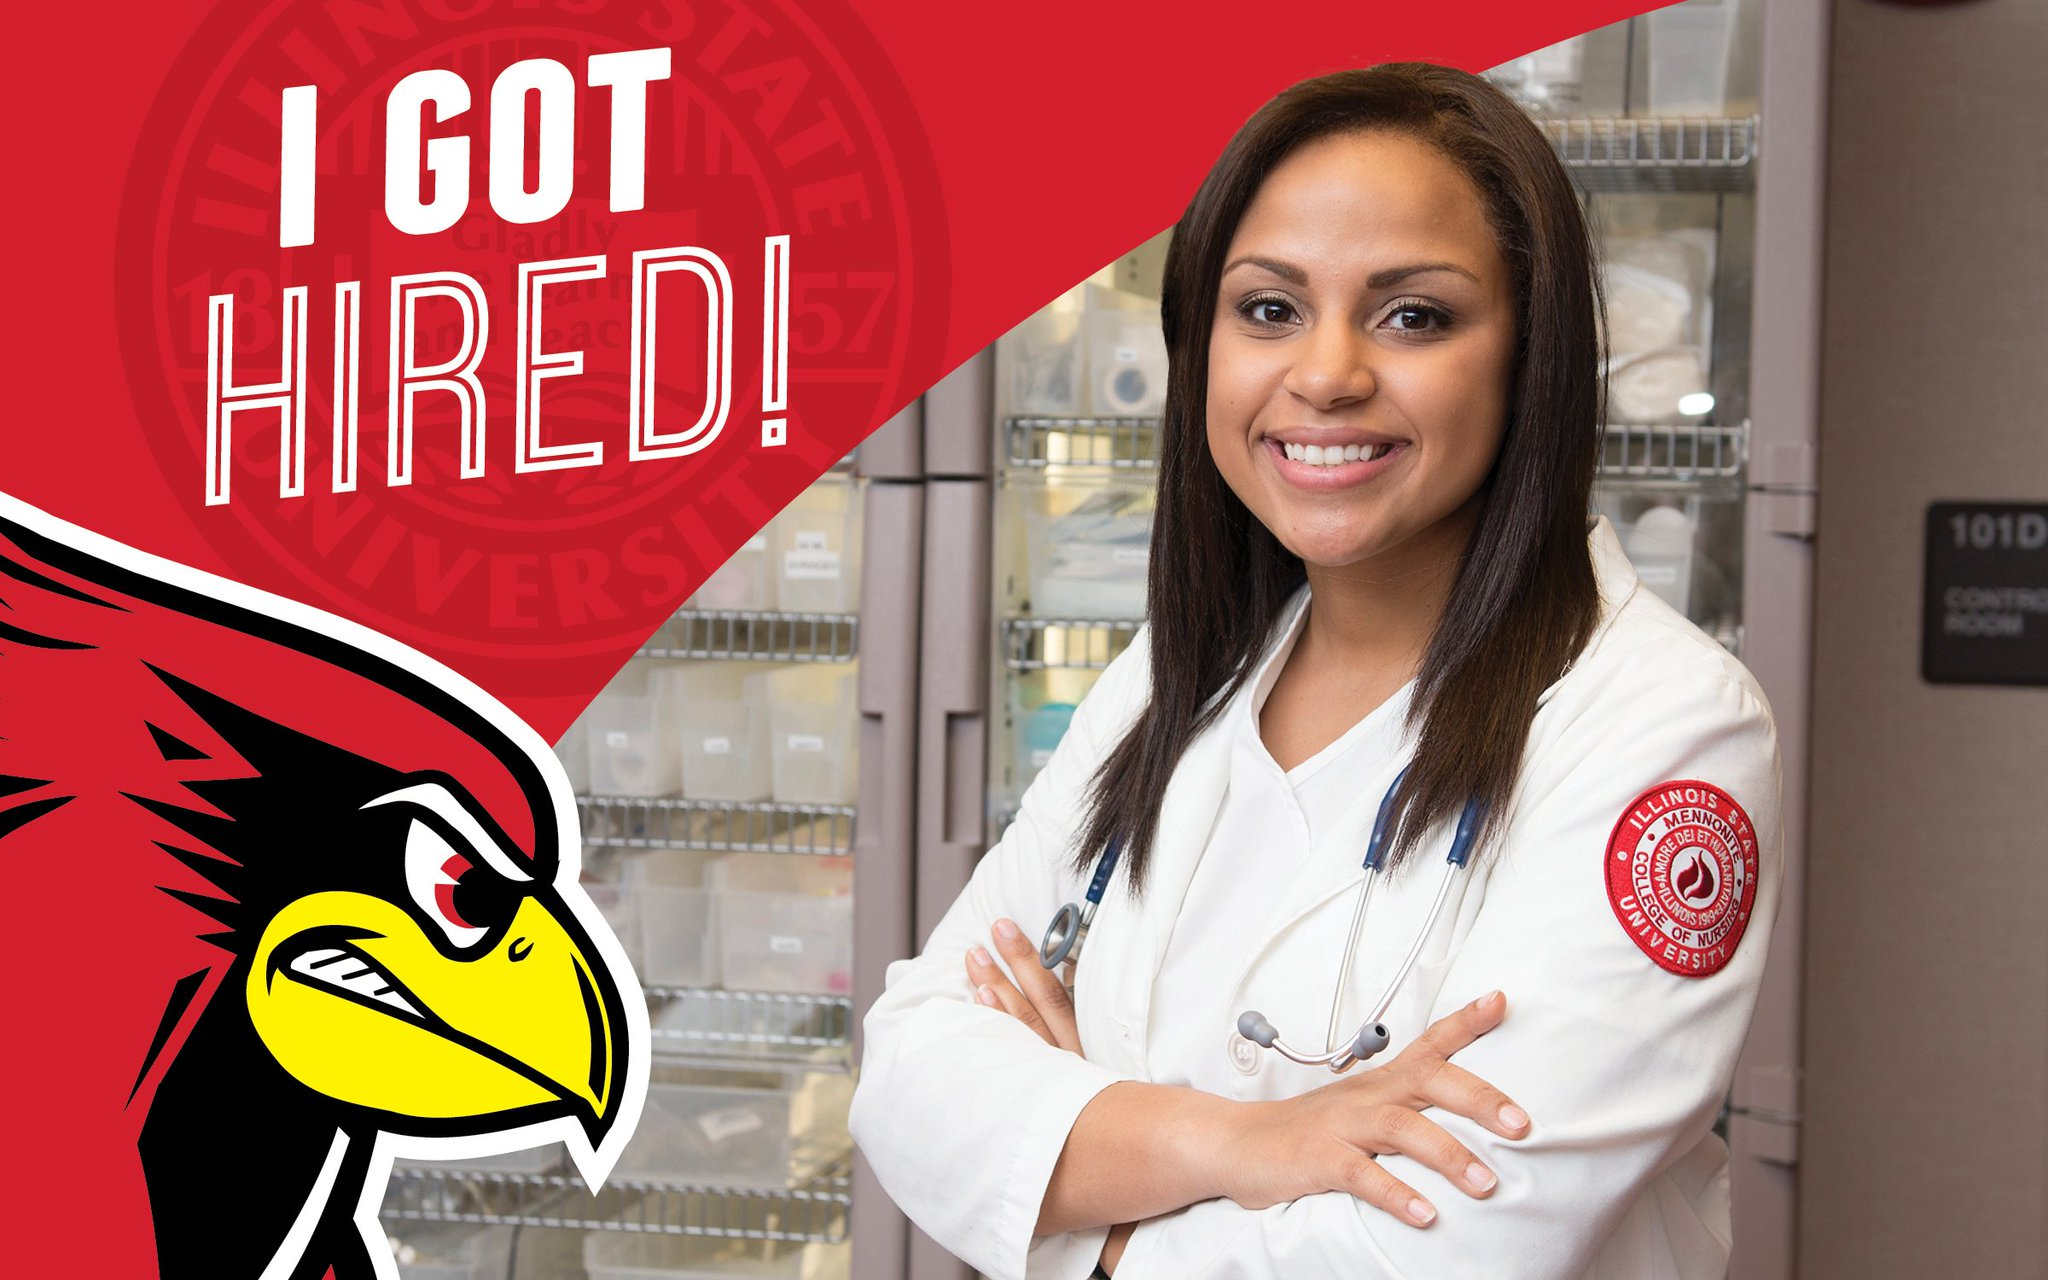 Tianna accepted a position at Memorial Medical Center & will return to ISU in the fall as a grad student. #STATEYourCareer https://t.co/4TPlUIqUEw